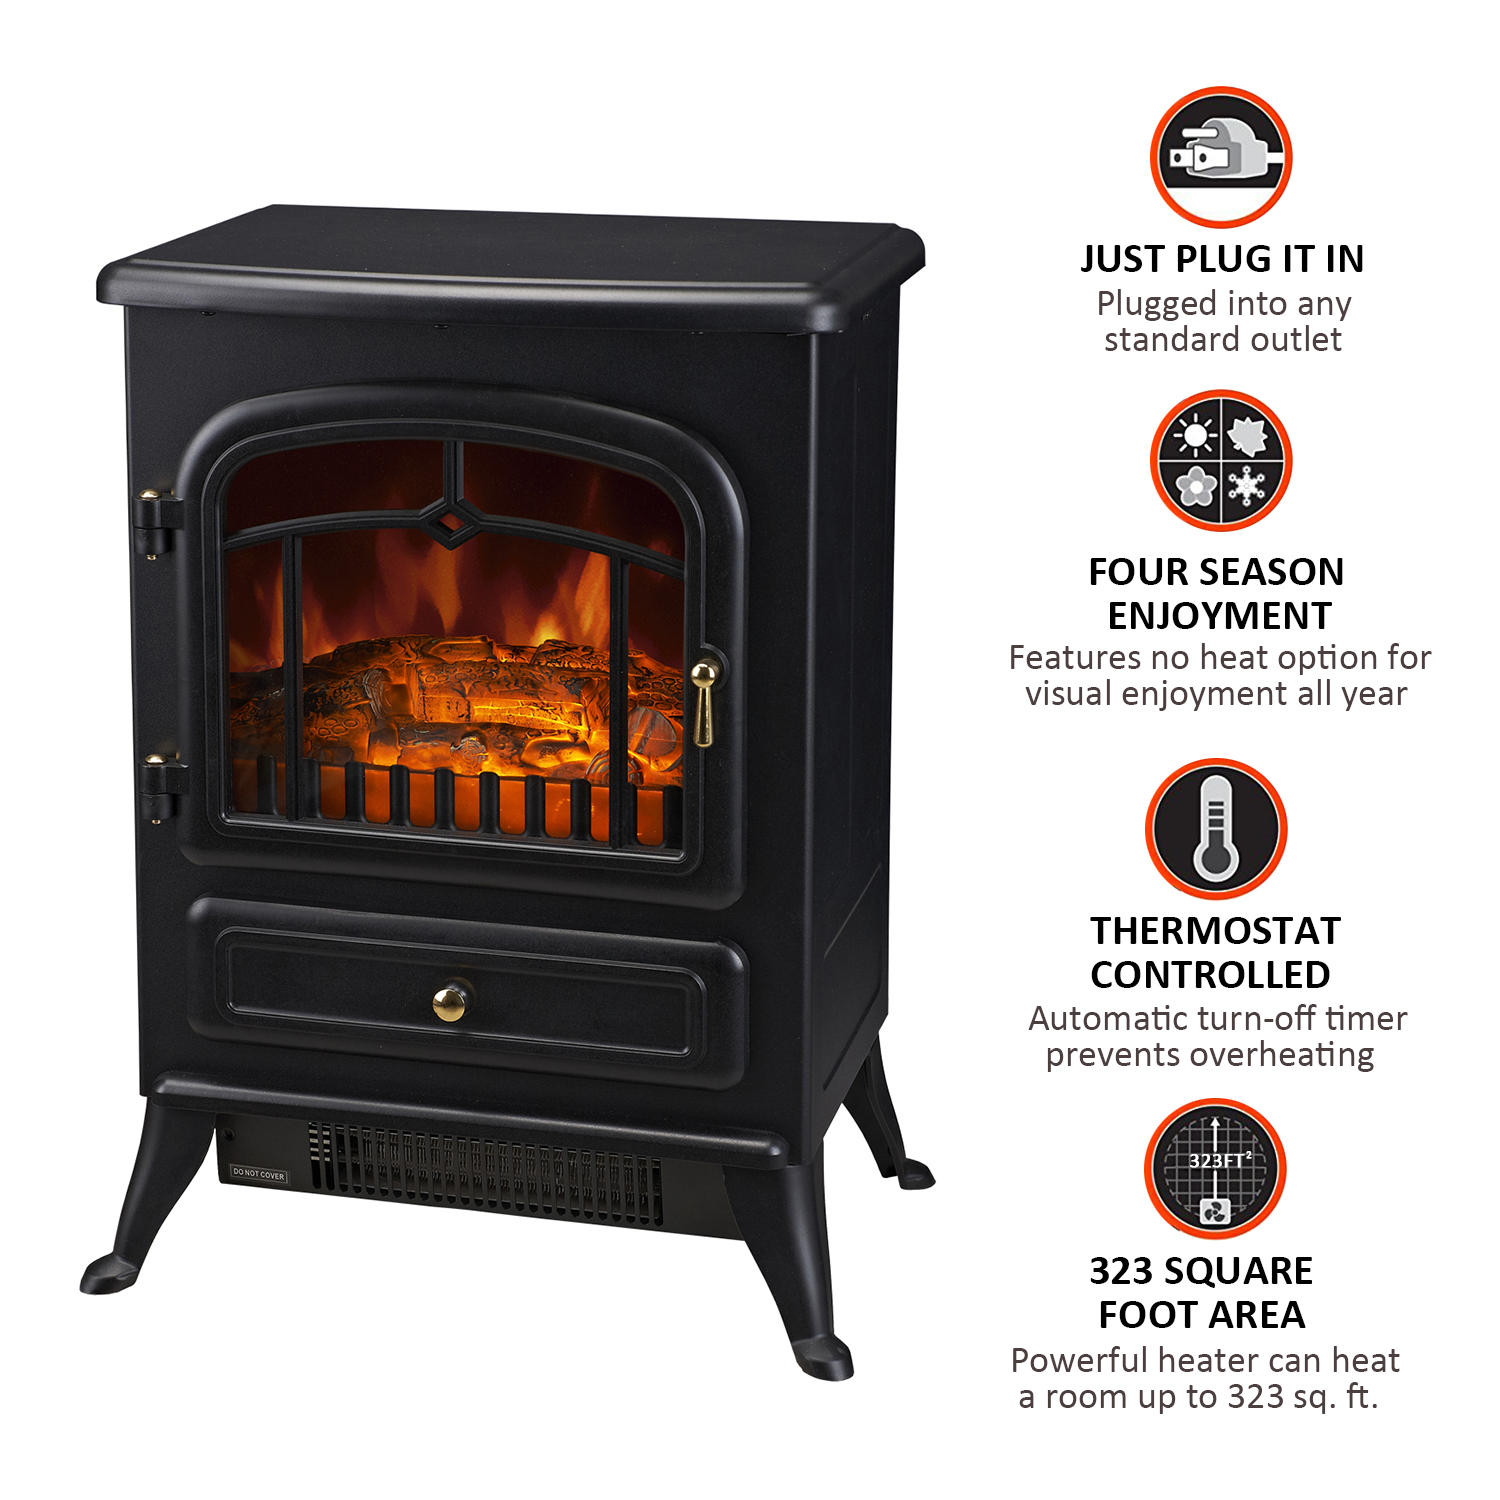 HOMCOM-750-1500W-Portable-Electric-Fireplace-Stove-Heater-Adjustable-LED-Flames thumbnail 6